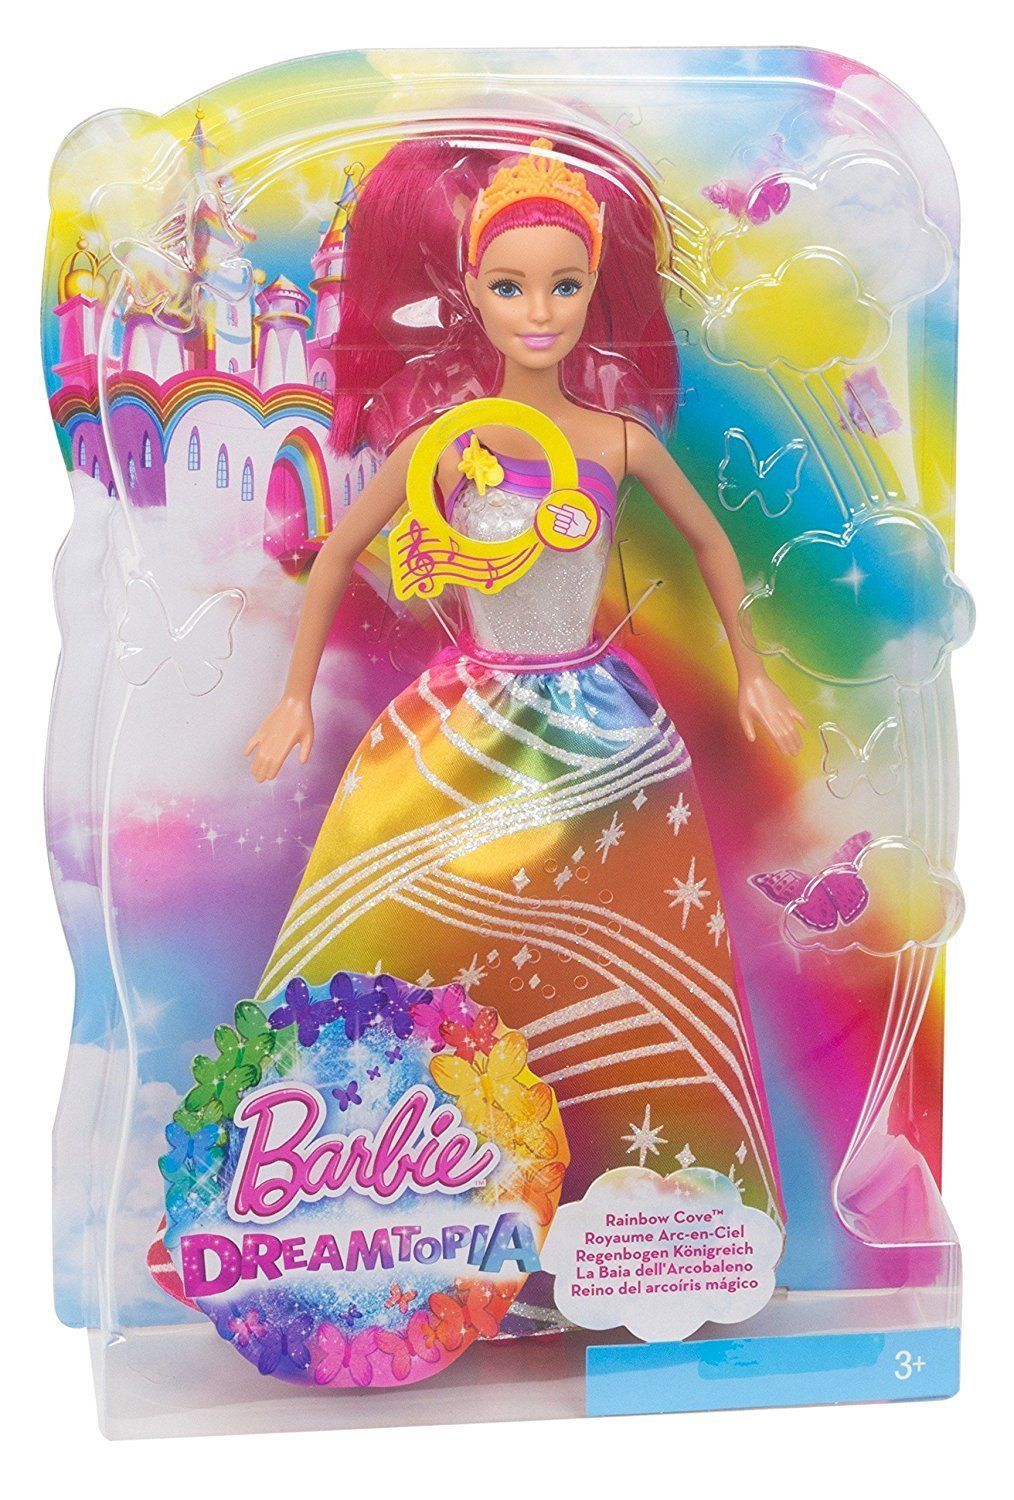 for whole family first look united kingdom Barbie Dreamtopia Rainbow Cove Light Show Princess Doll ...